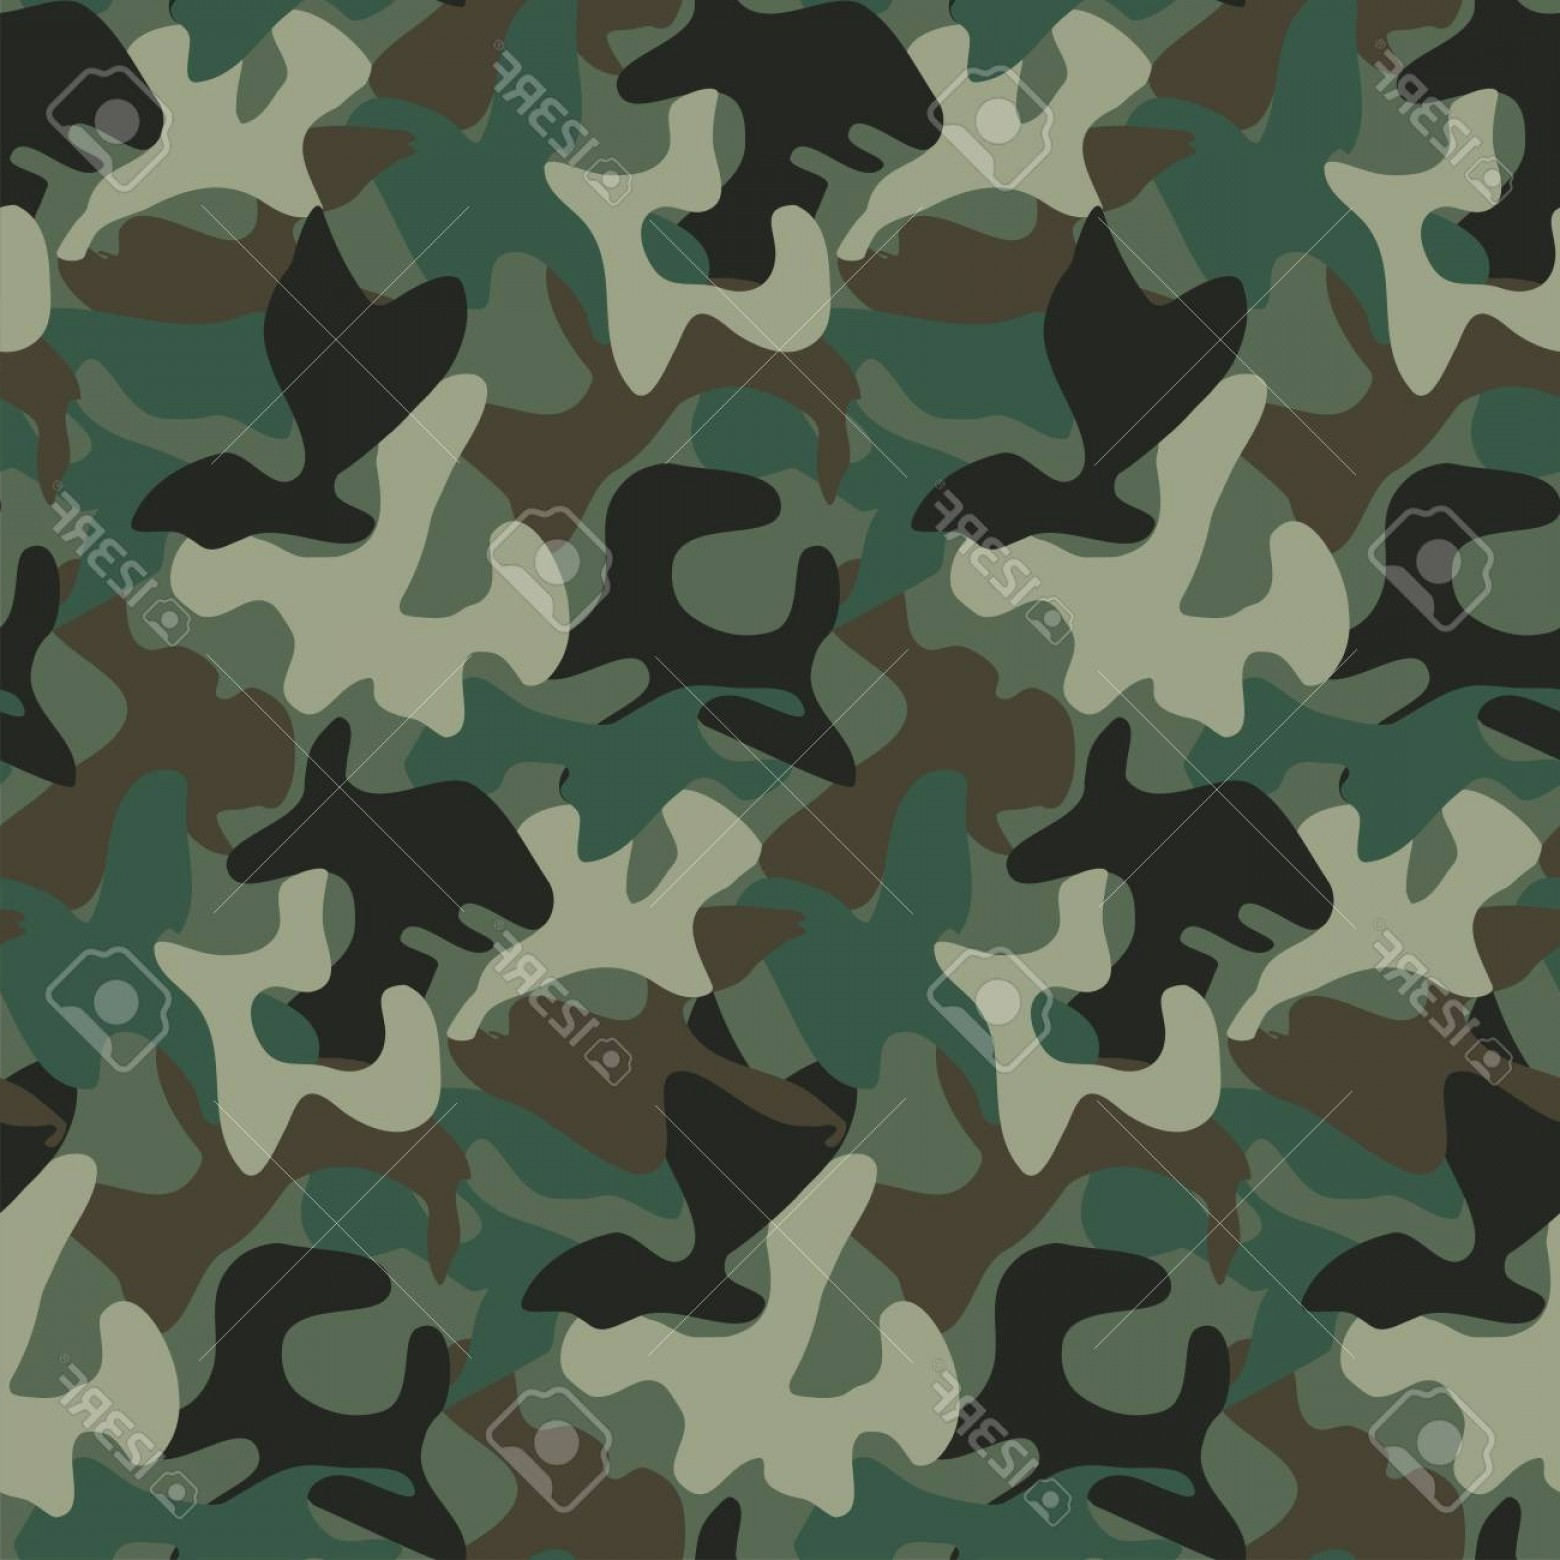 Army Camouflage Pattern Vector: Photostock Vector Abstract Military Camouflage Background Made Of Splash Seamless Camo Pattern For Army Clothing